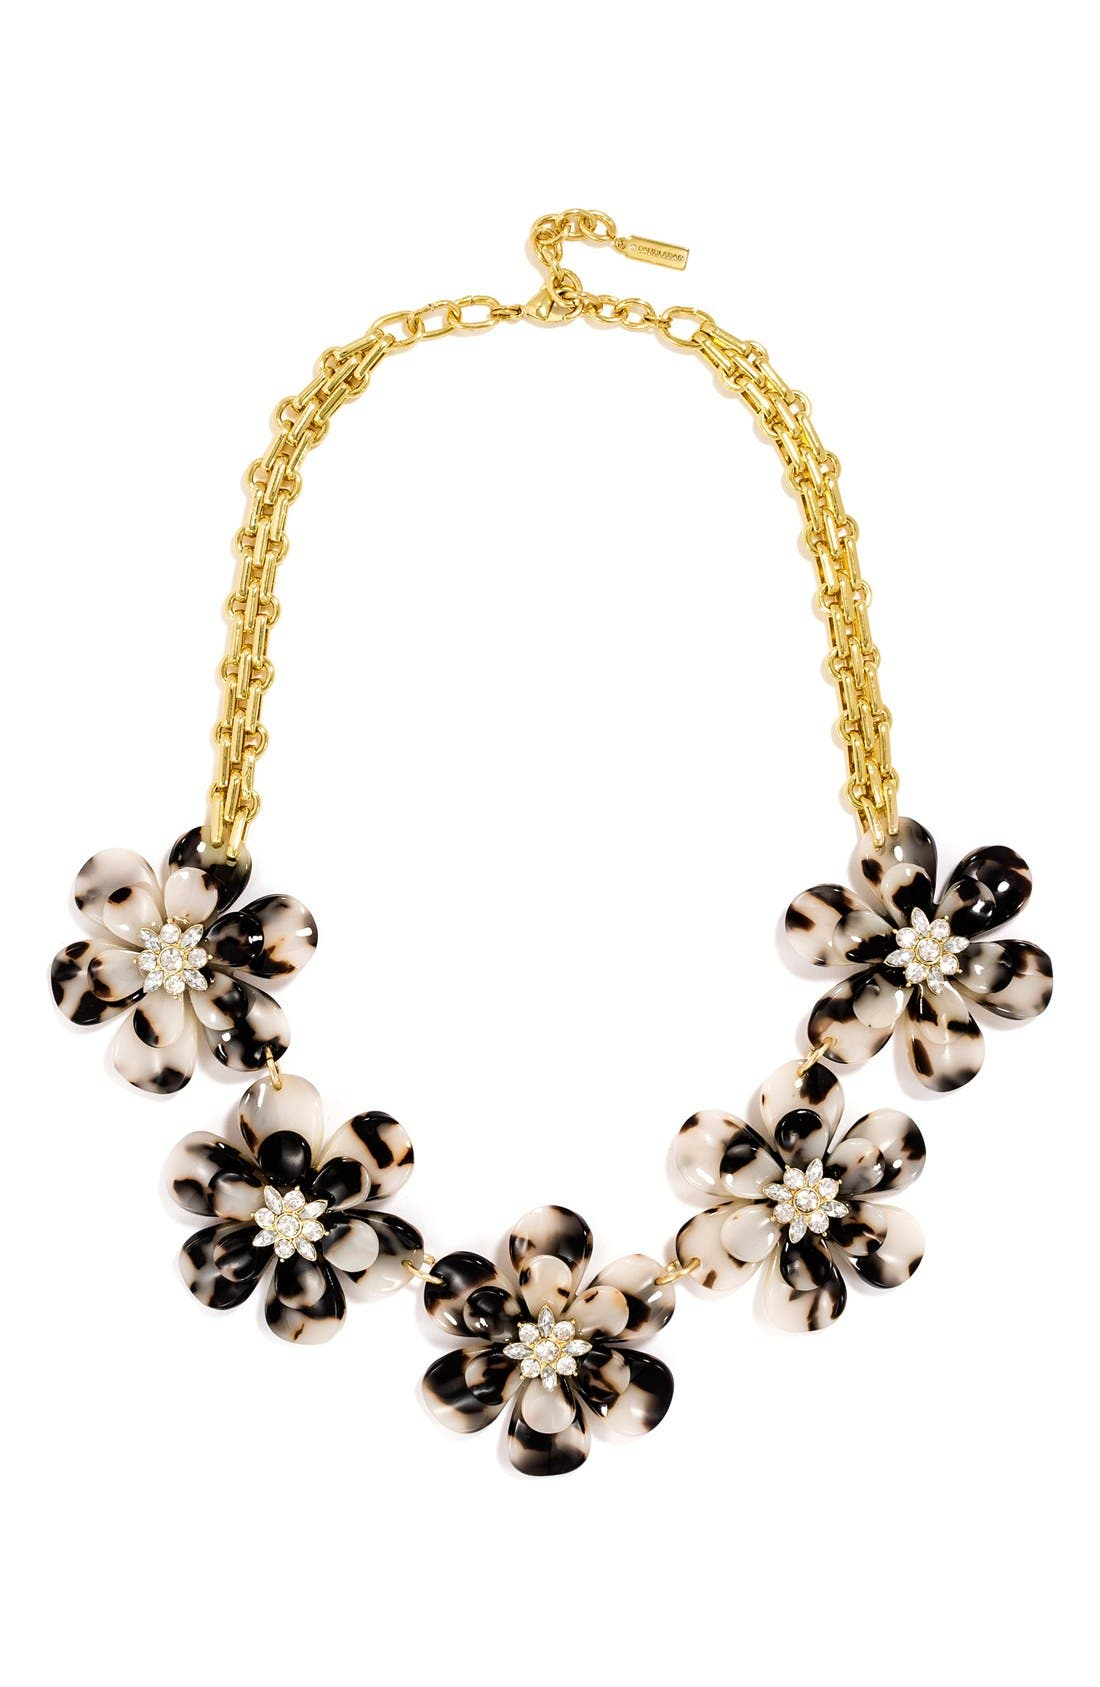 Main Image - BaubleBar 'Twiggy' Floral Collar Necklace